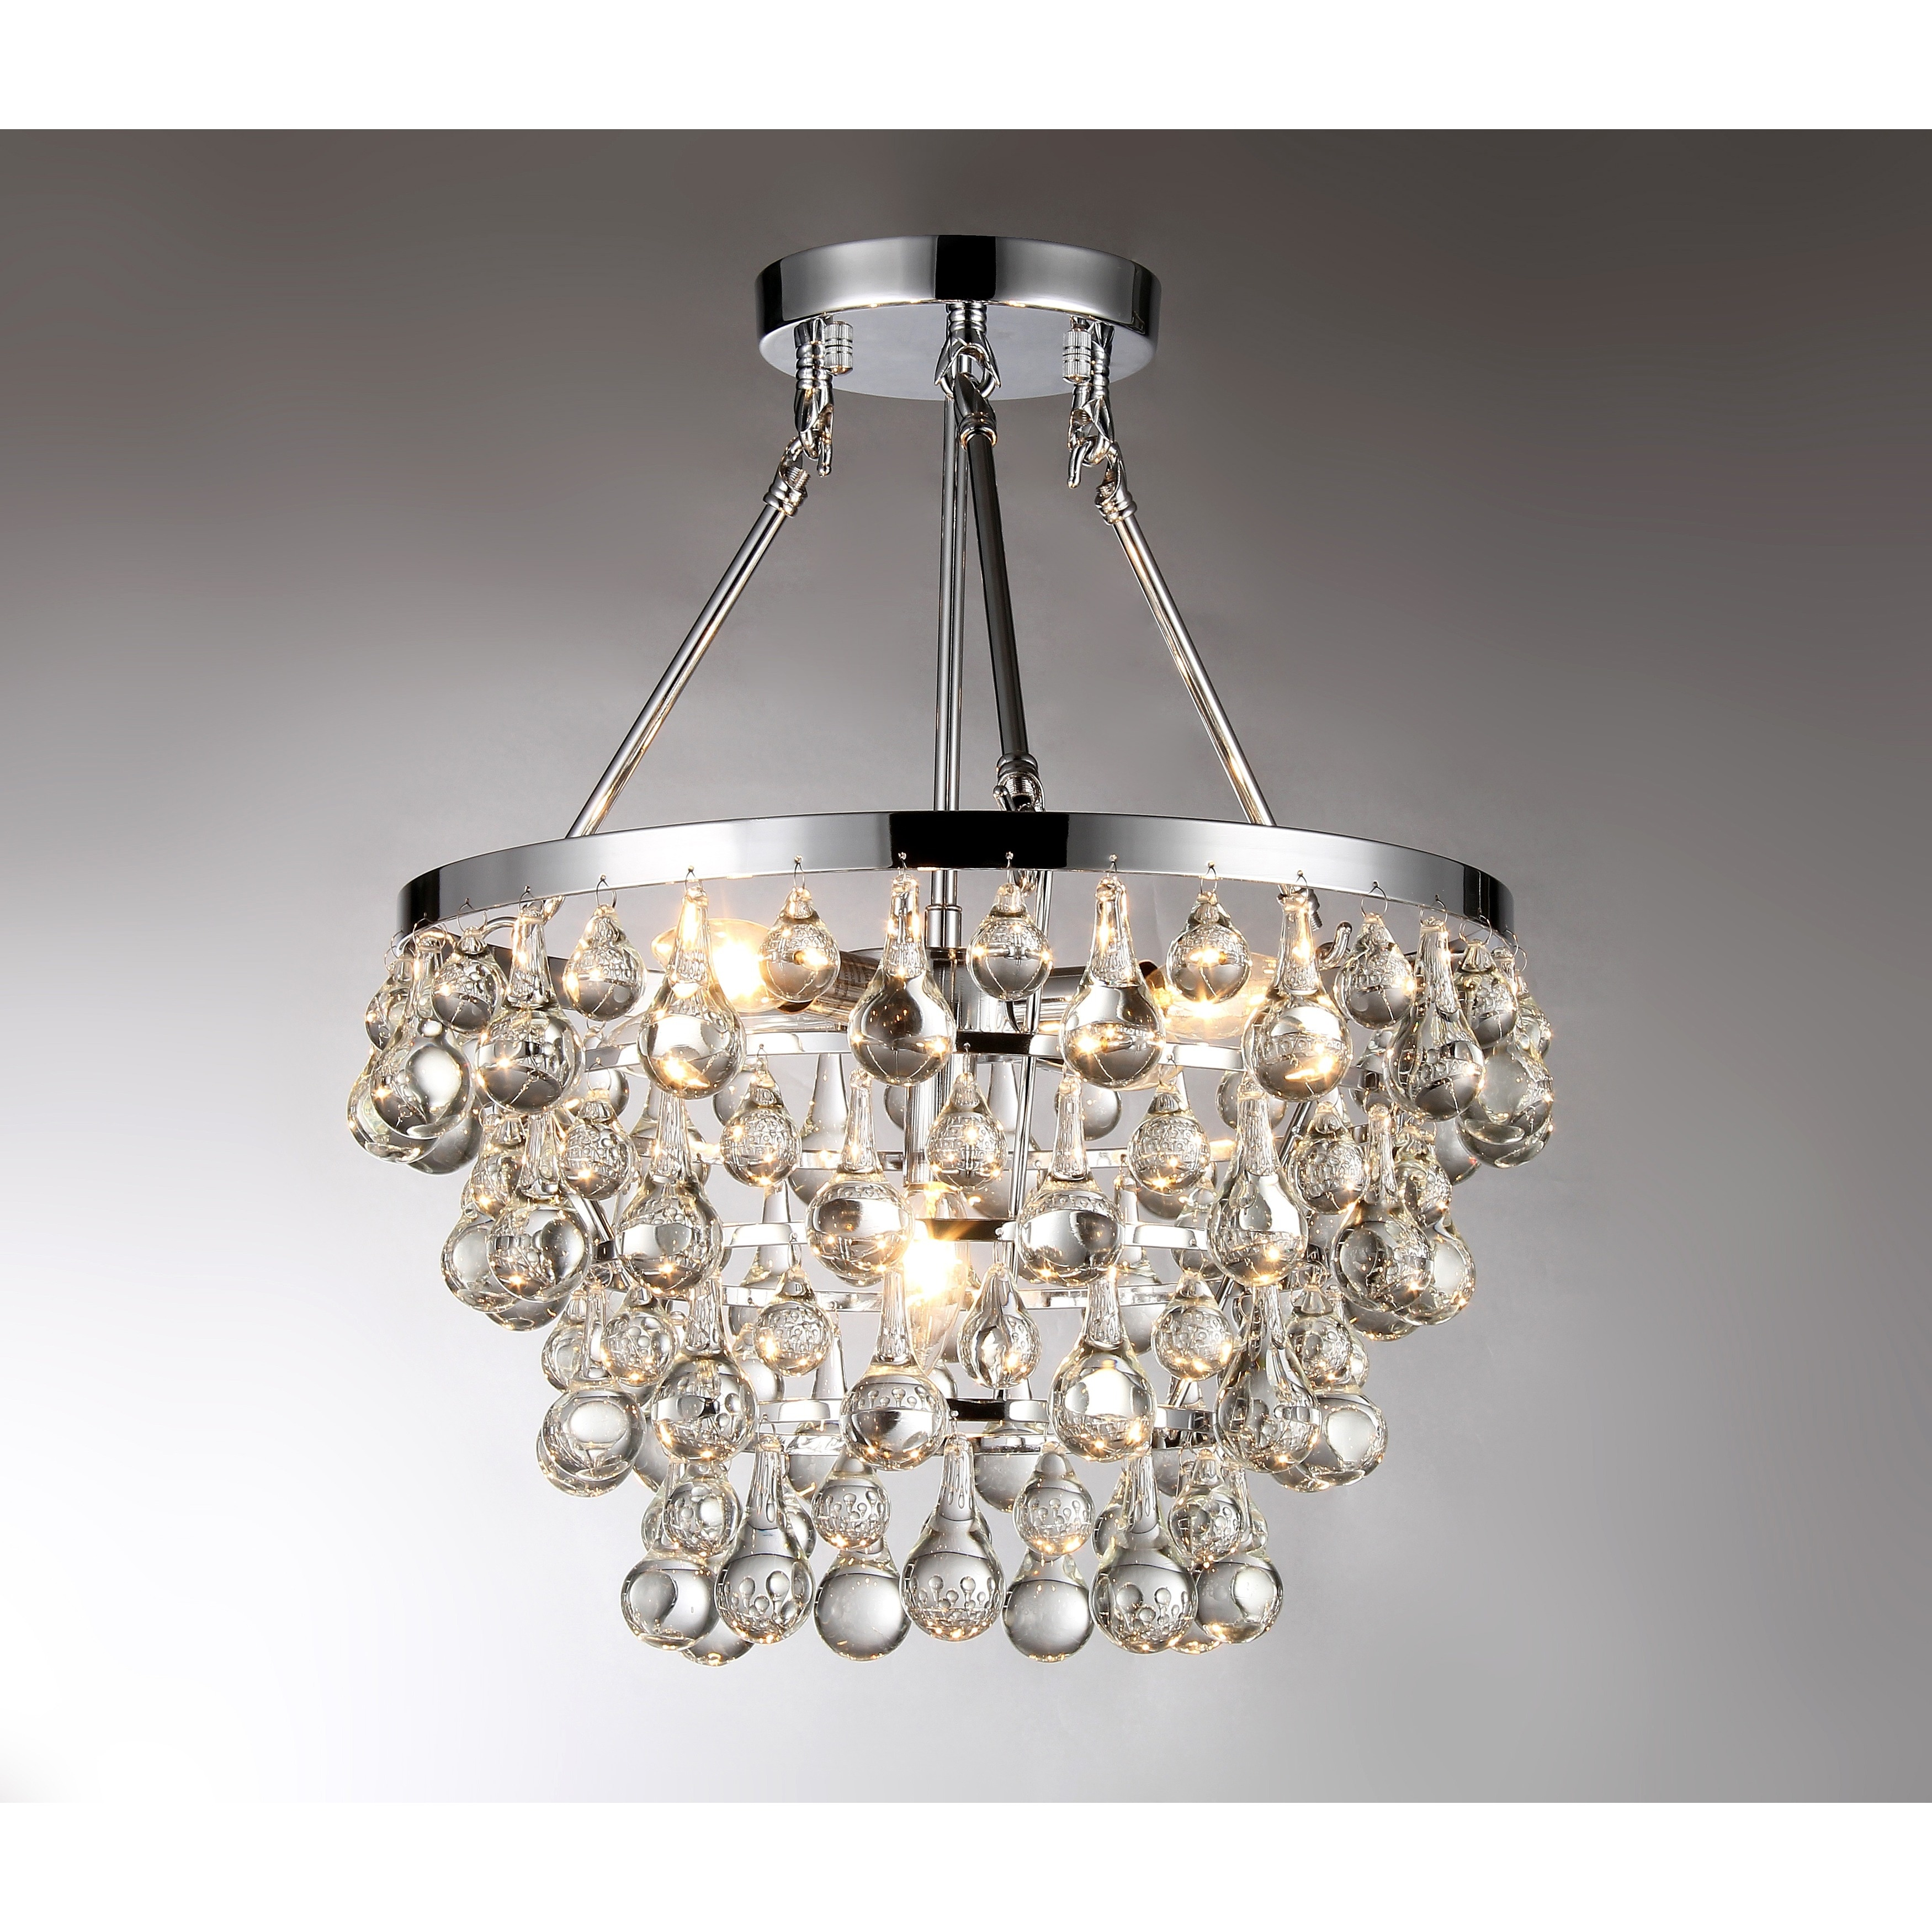 Crystal grand chandelier free shipping today overstock crystal grand chandelier free shipping today overstock 14983235 aloadofball Images